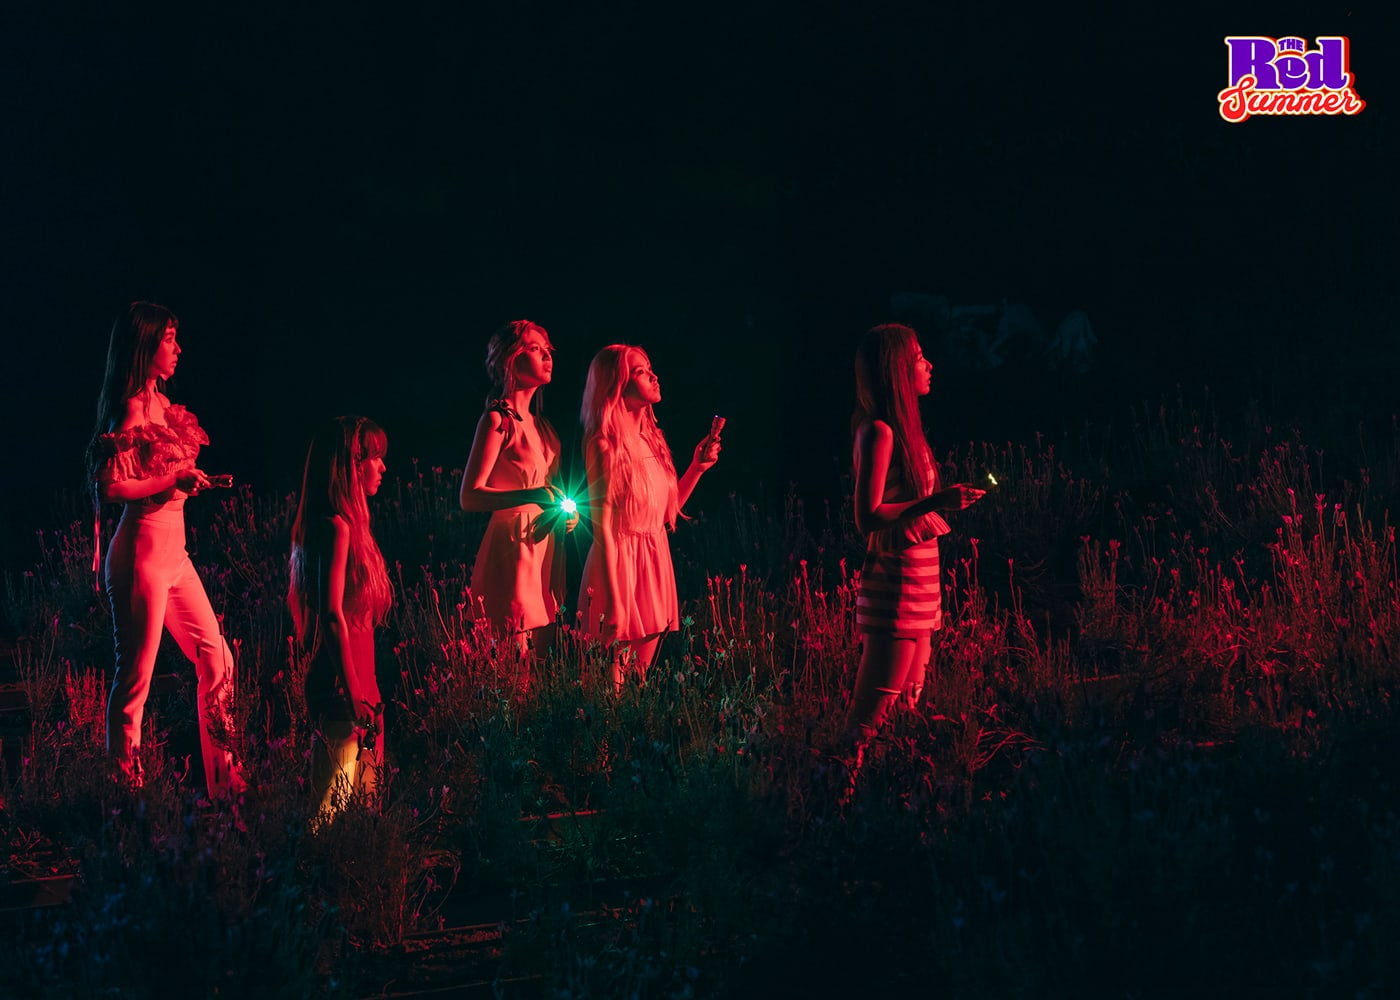 """Update: Red Velvet Shares Another Eerie New Teaser Image For Comeback With """"The Red Summer"""""""